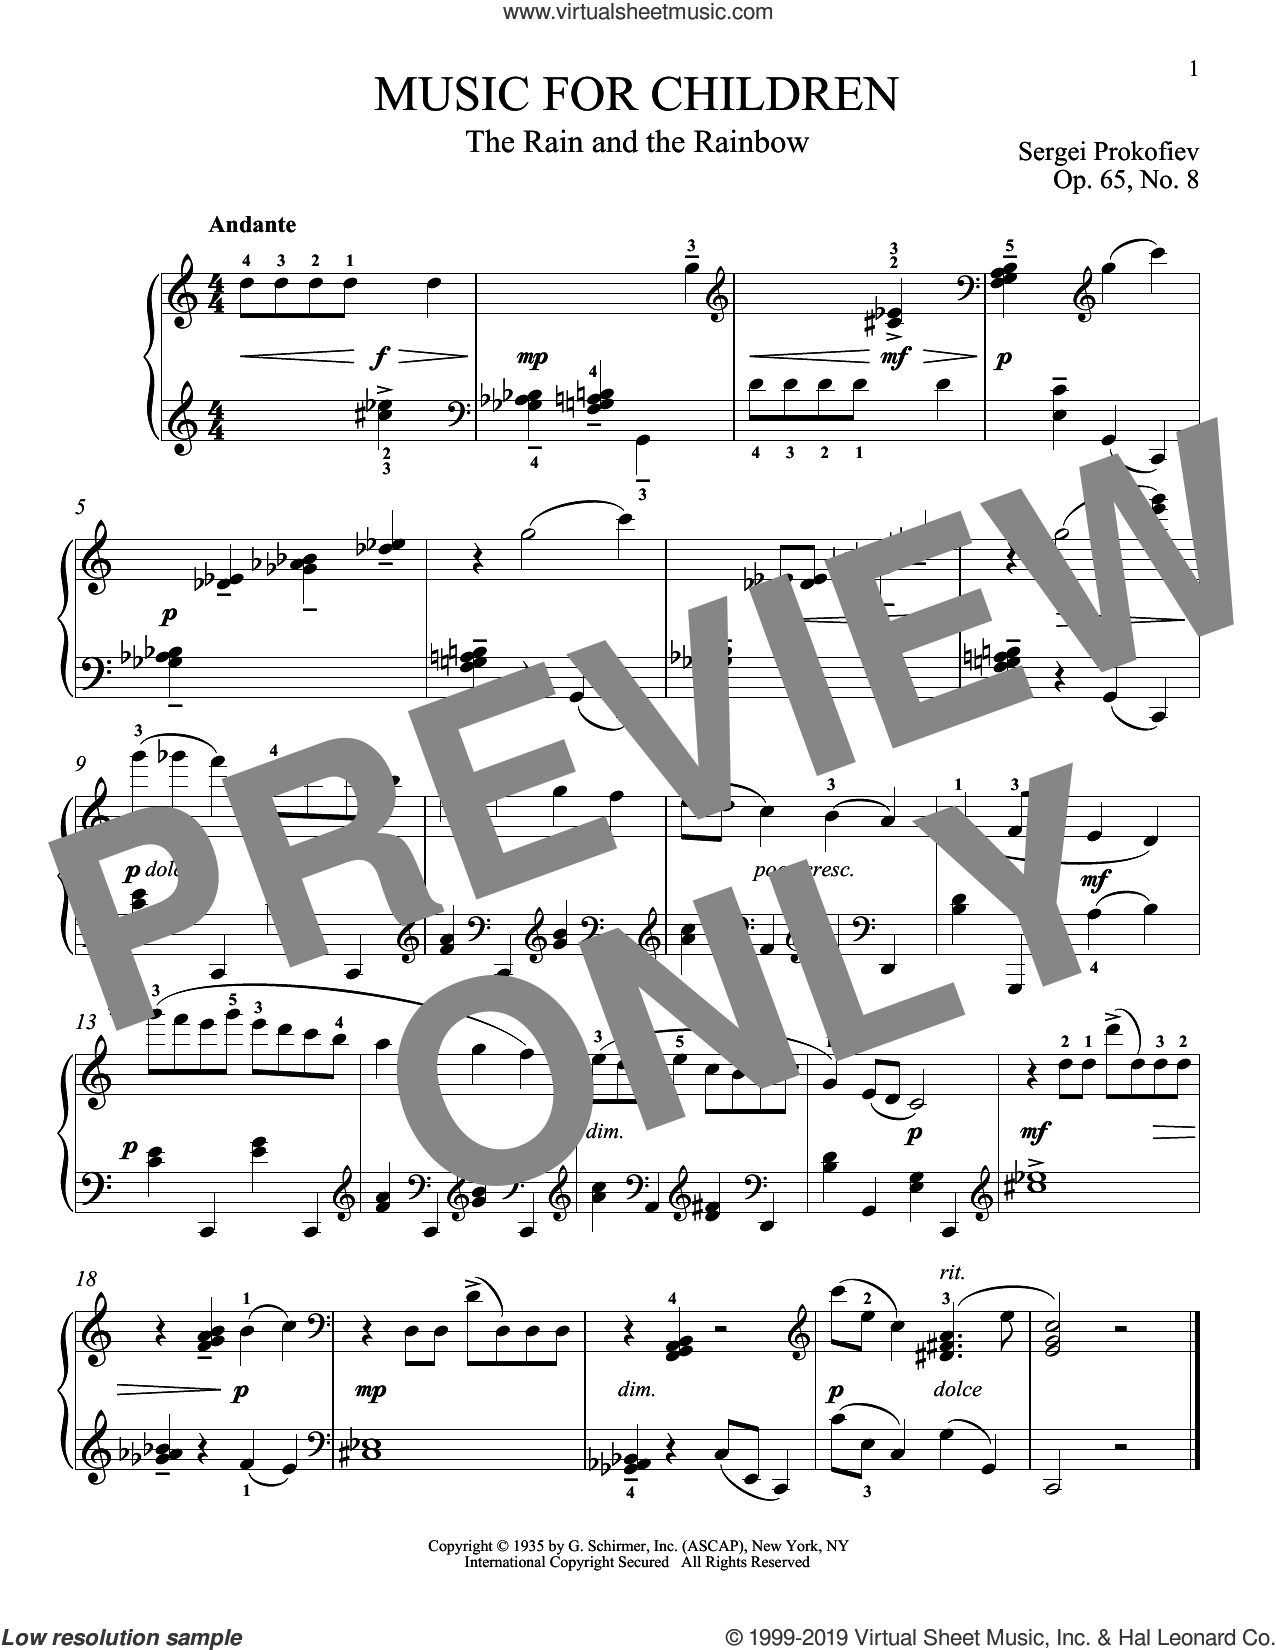 The Rain And The Rainbow, Op. 65, No. 8 sheet music for piano solo by Sergei Prokofiev and Matthew Edwards, classical score, intermediate skill level